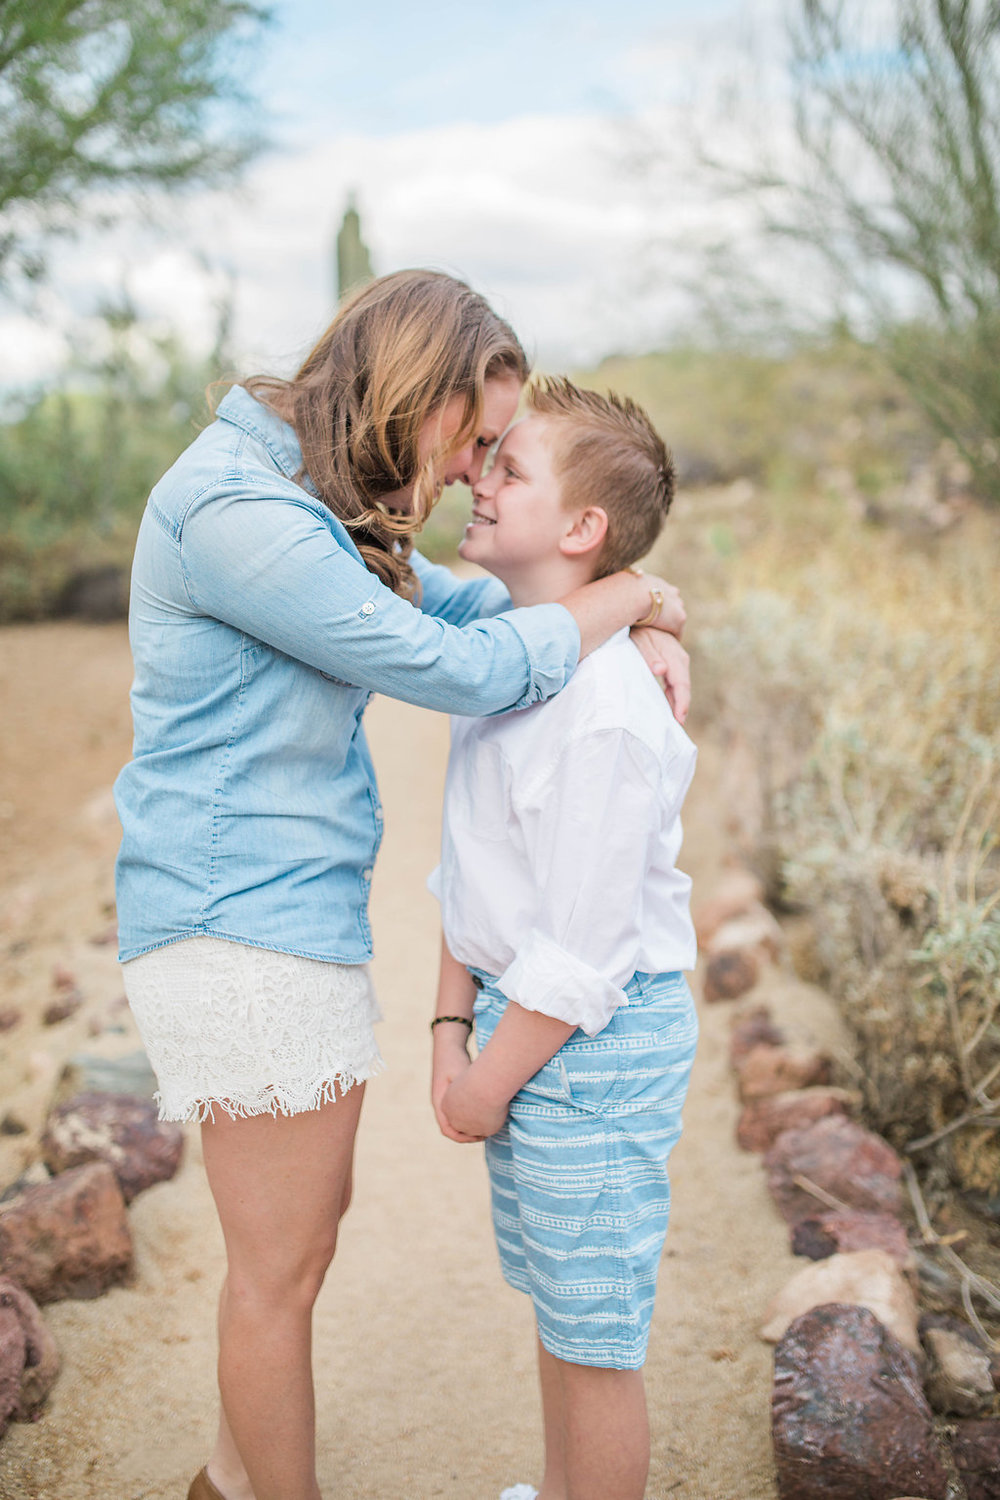 Mom and Son Photo Shoot | Arizona Session | Single Mom | Mom and Son | Family Photo Session | Glendale, Arizona | Photography Posing Techniques | How to Pose Your Clients